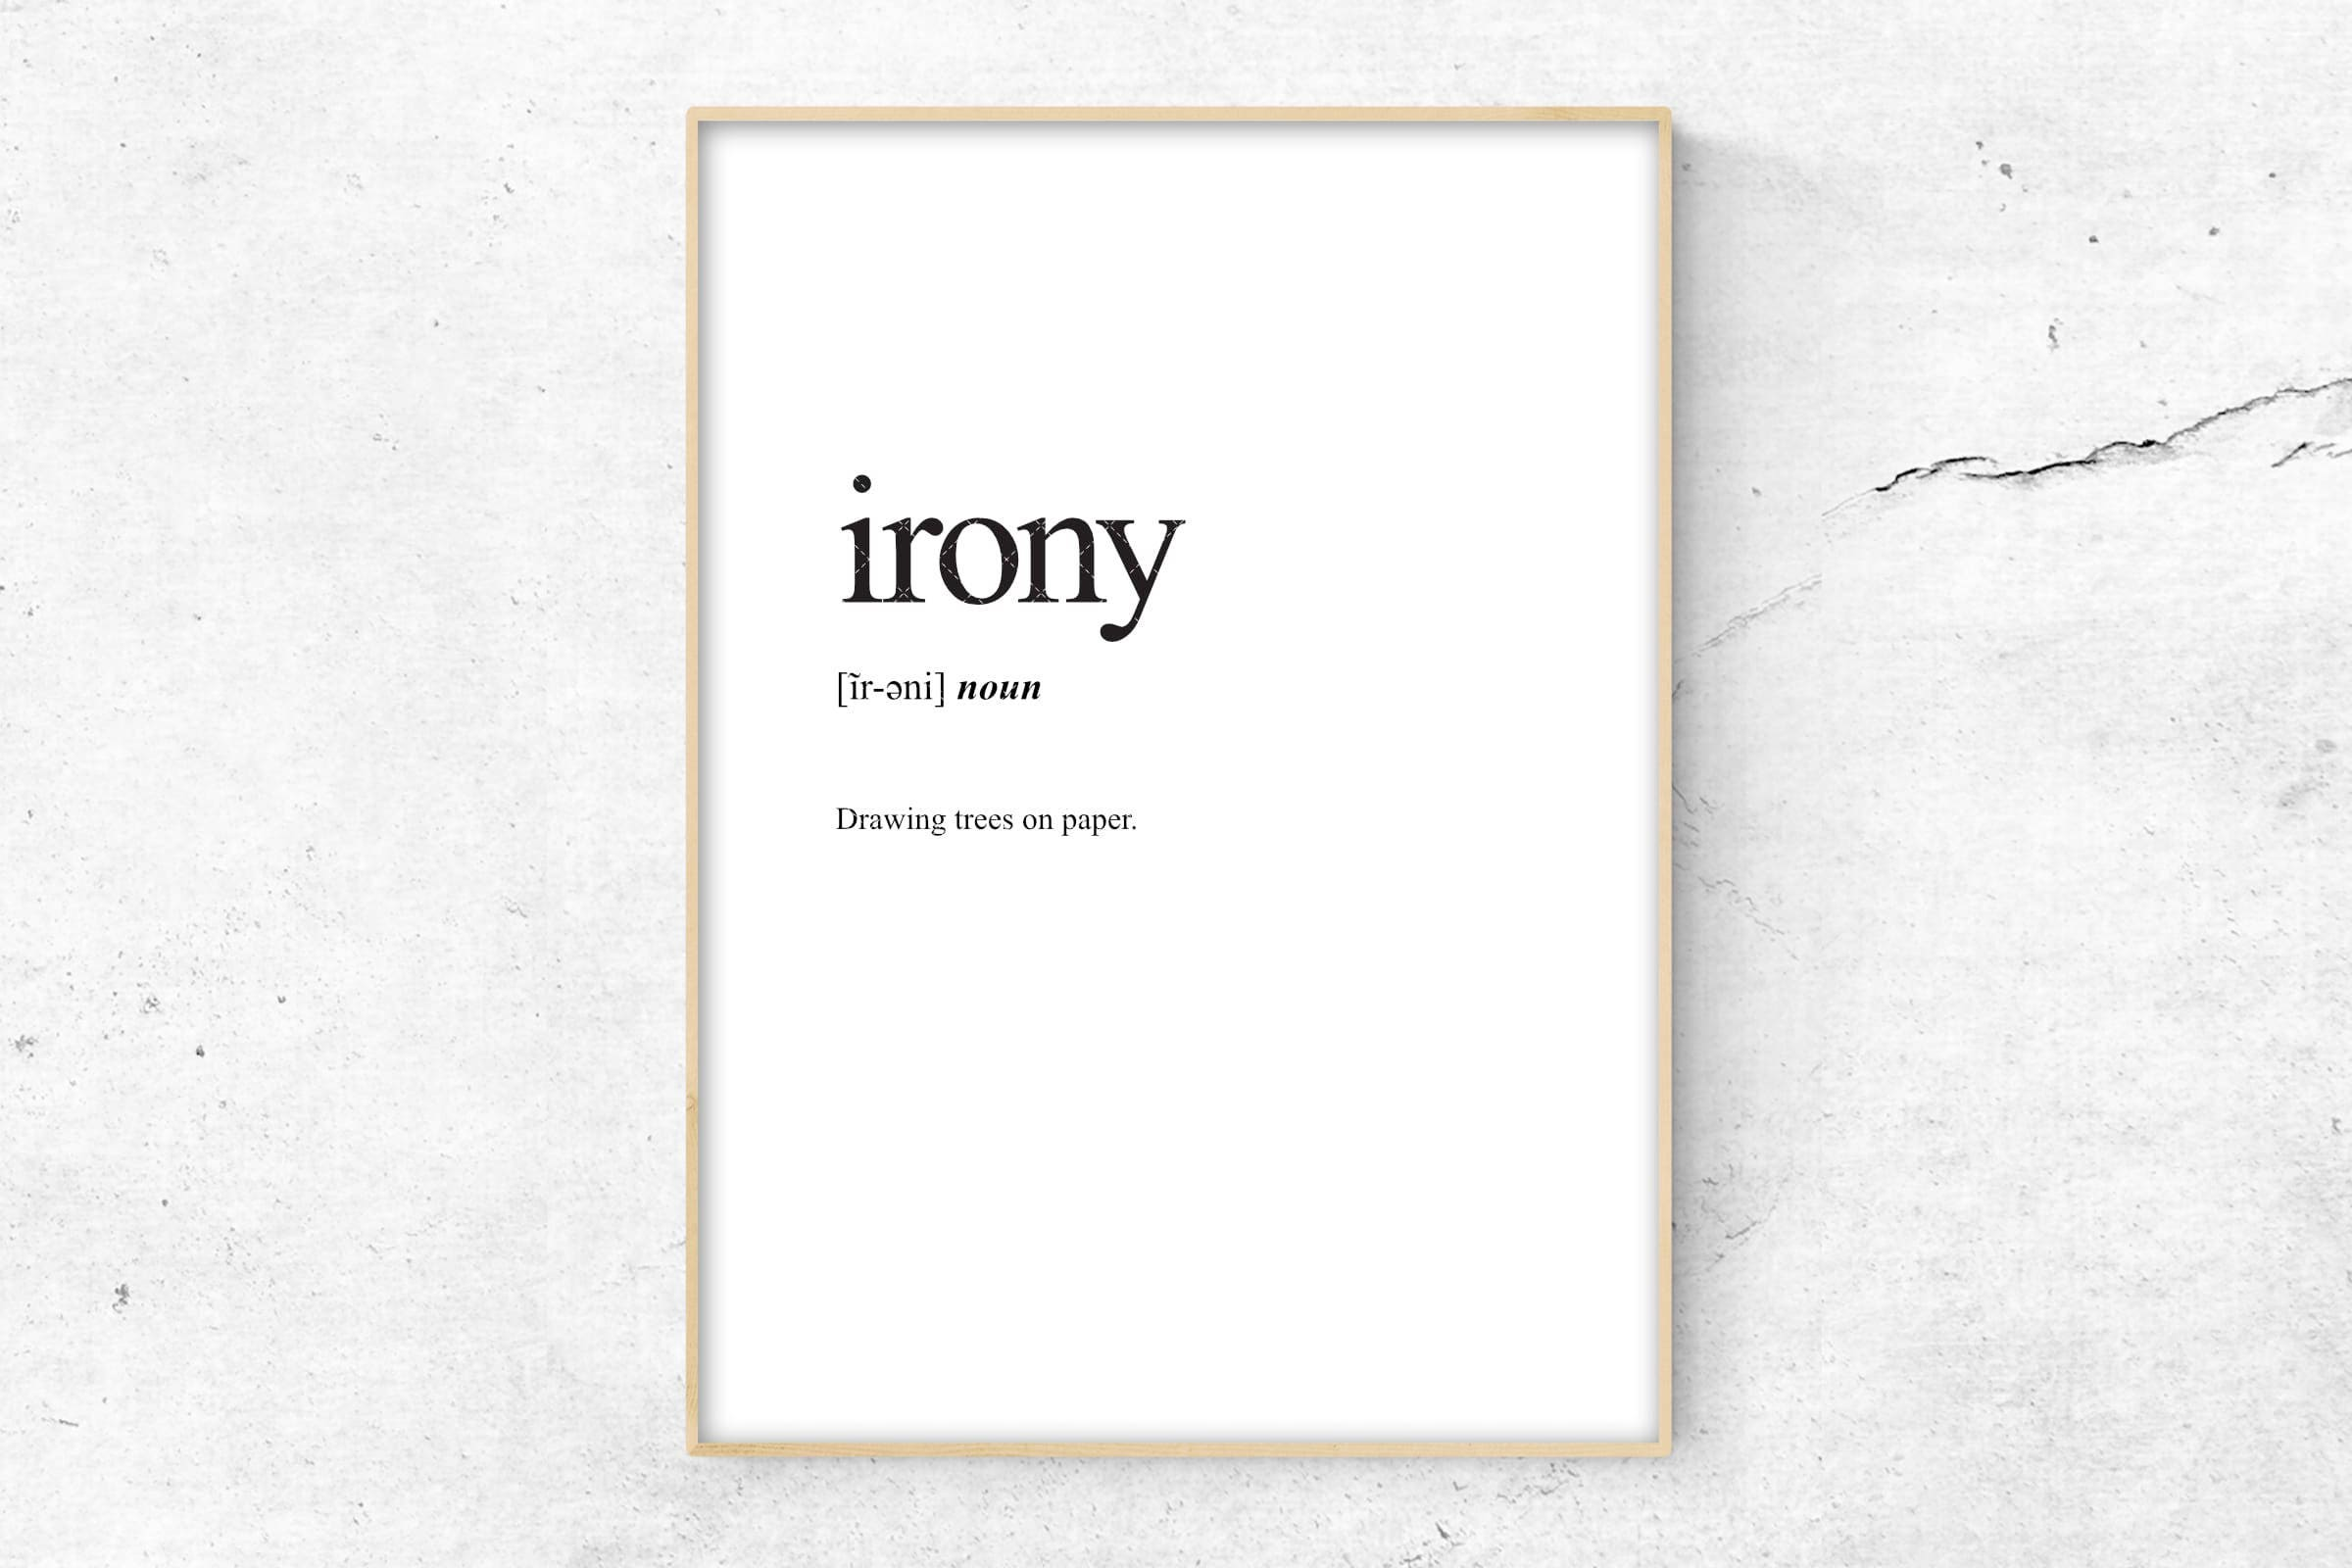 Fenetre En Bandeau Definition irony definition print, definition poster, word meaning print, word  definition art, funny wall art print, dictionary meaning